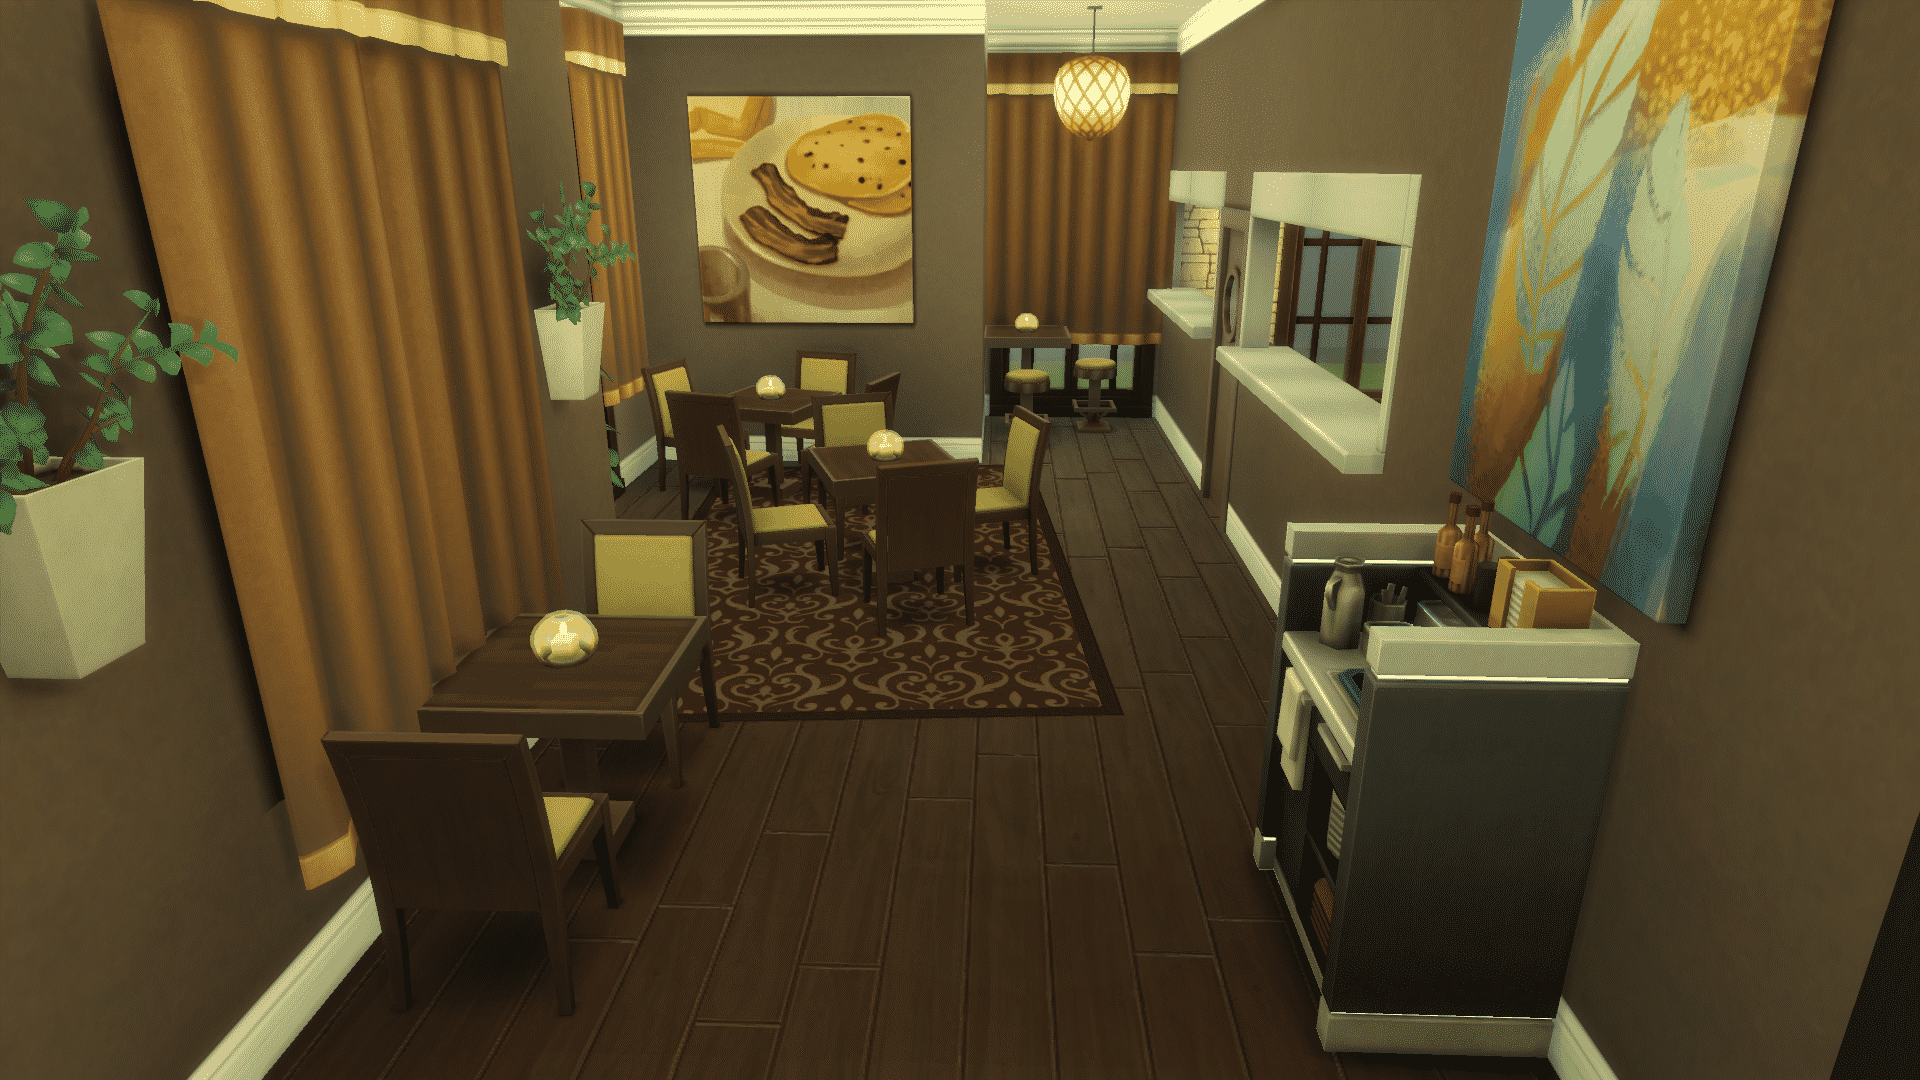 The Sims 4 Dine Out Decorating Your Restaurant S Interior